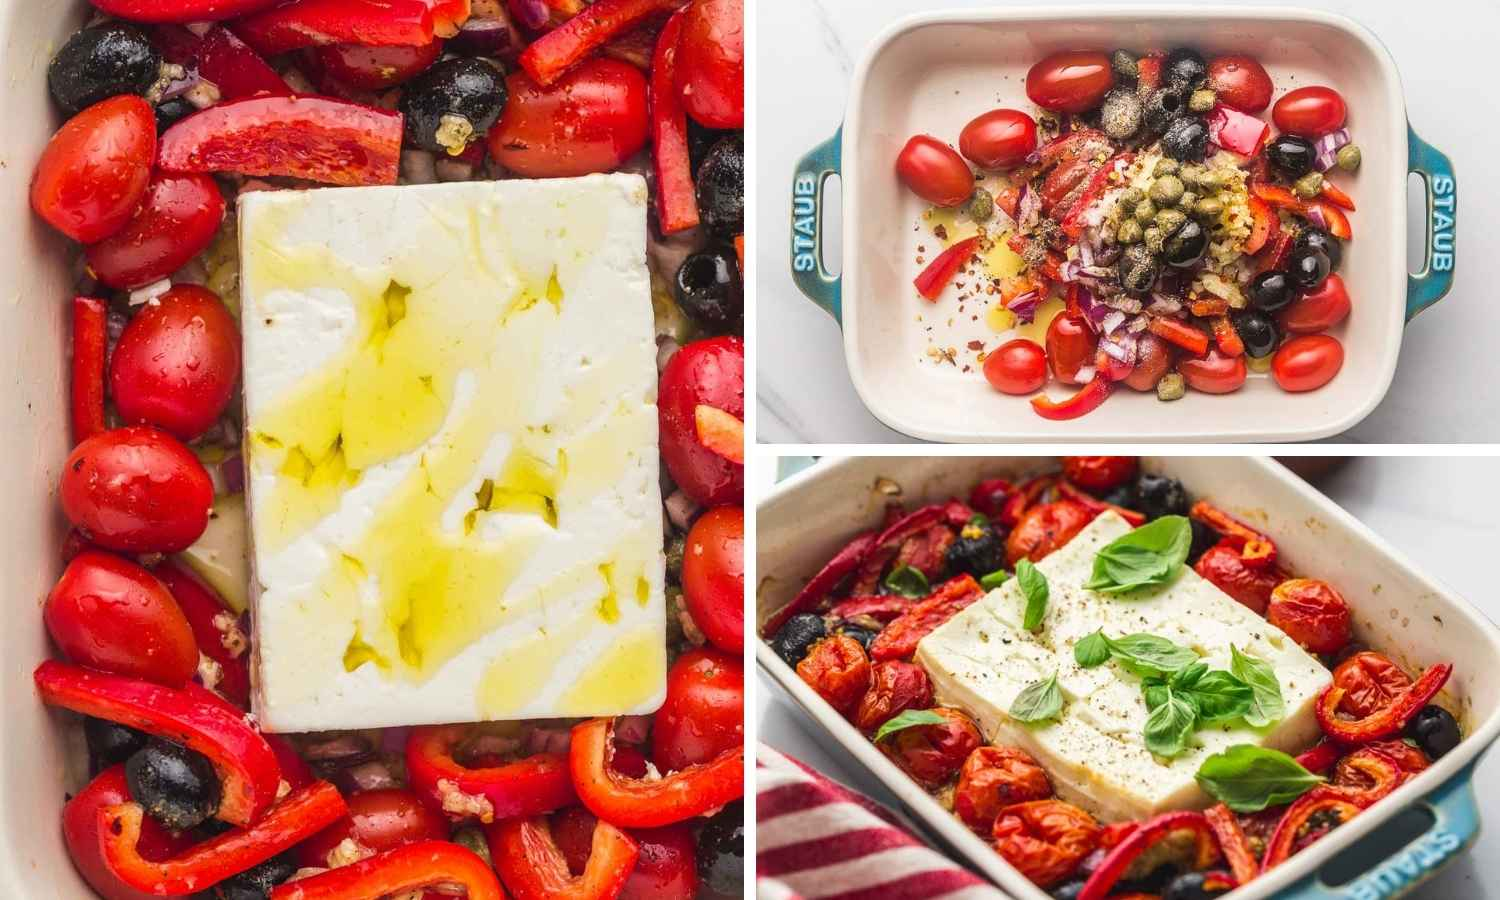 A collage with 3 images how to make baked feta dip